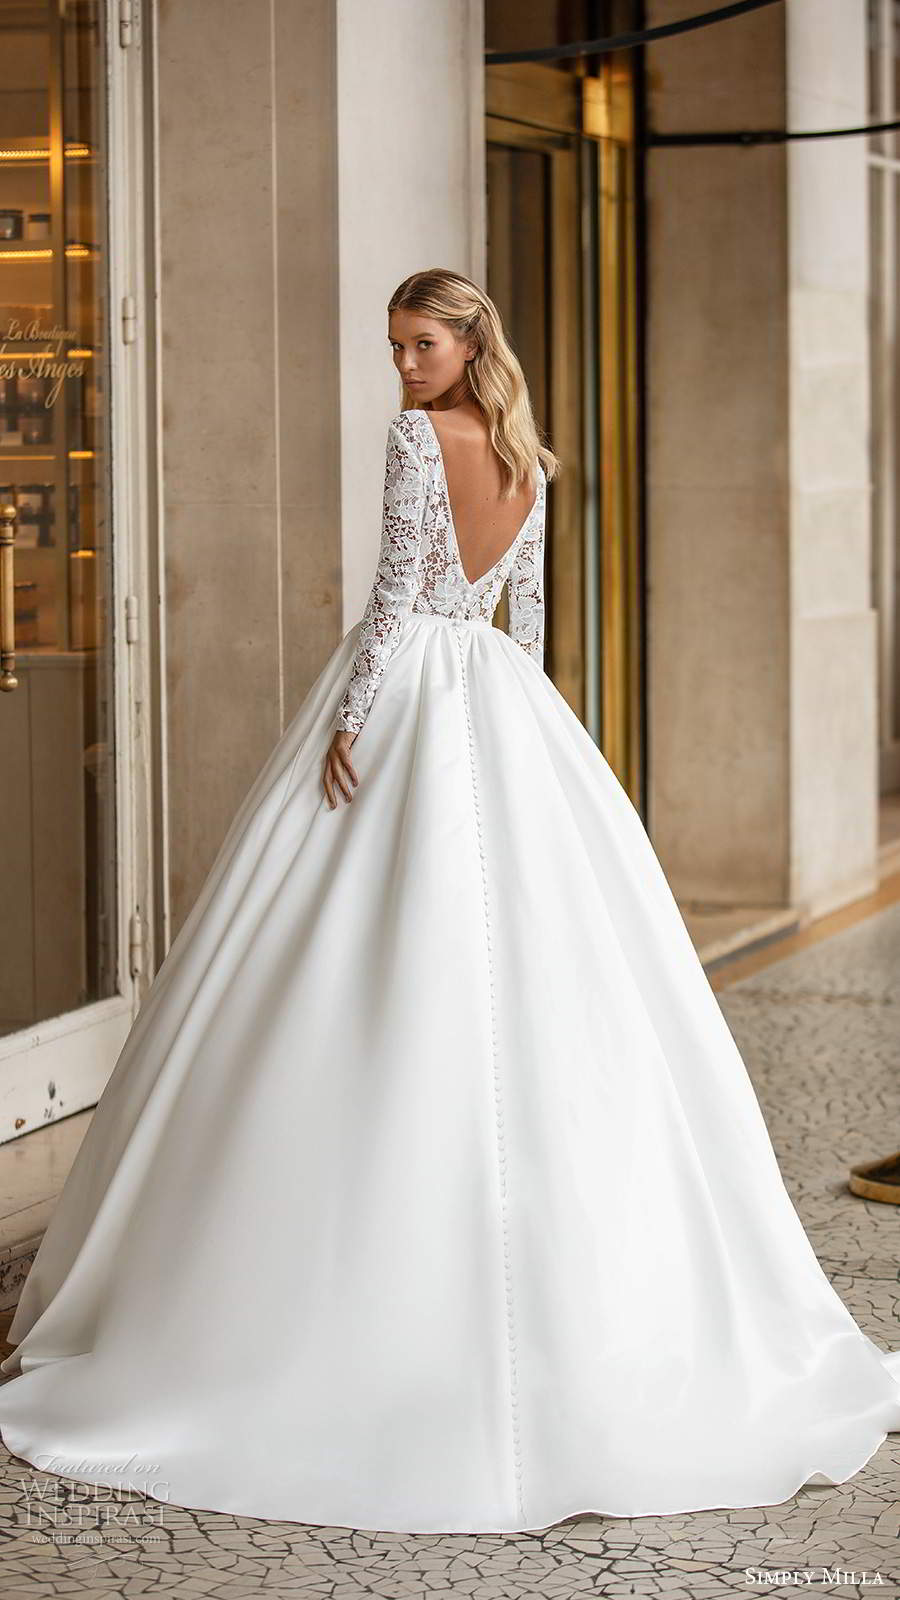 simply milla nova 2020 bridal long sleeves plunging neckline embellished lace bodice clean skirt a line ball gown wedding dress chapel train (5) bv